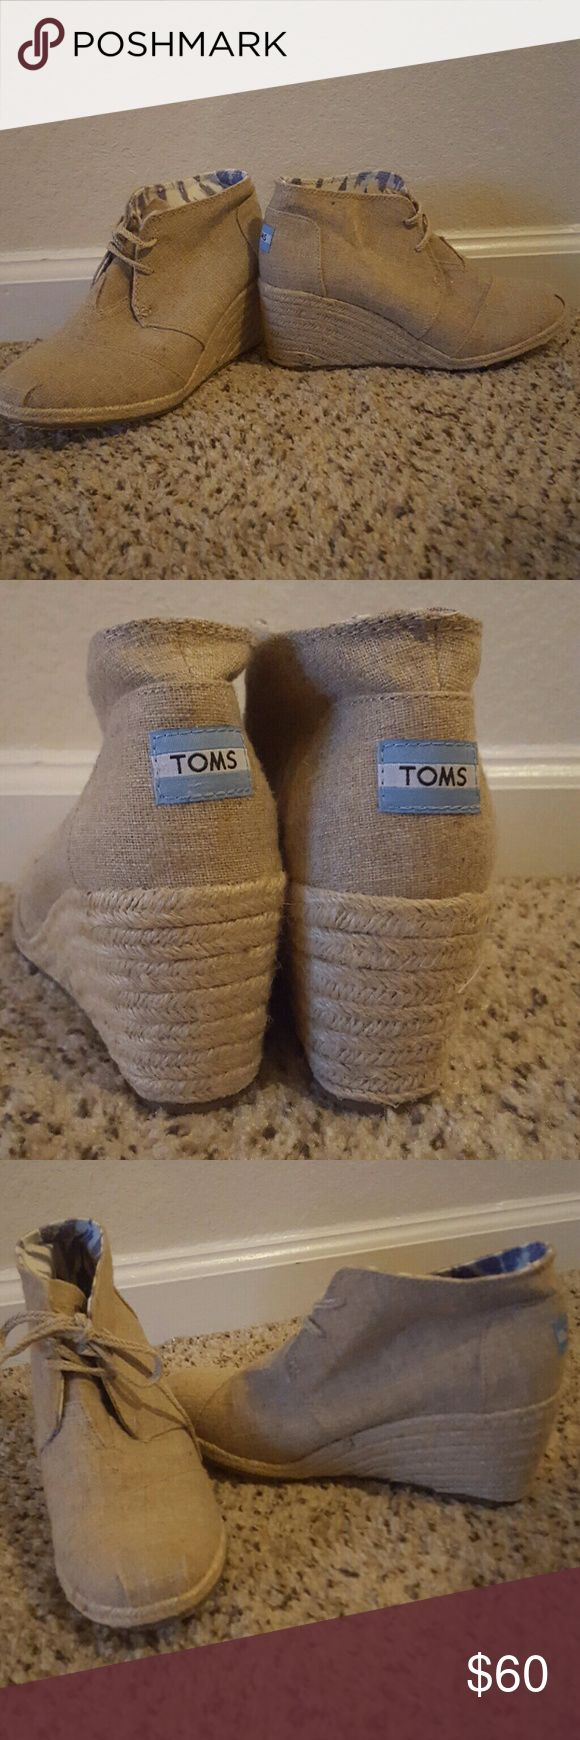 TOMS Jute Wedges (size 8.5) These Toms wedges have never been worn and are in excellent condition. They are a natural jute color with ties and are very comfortable to walk in. Size 8.5 TOMS Shoes Wedges